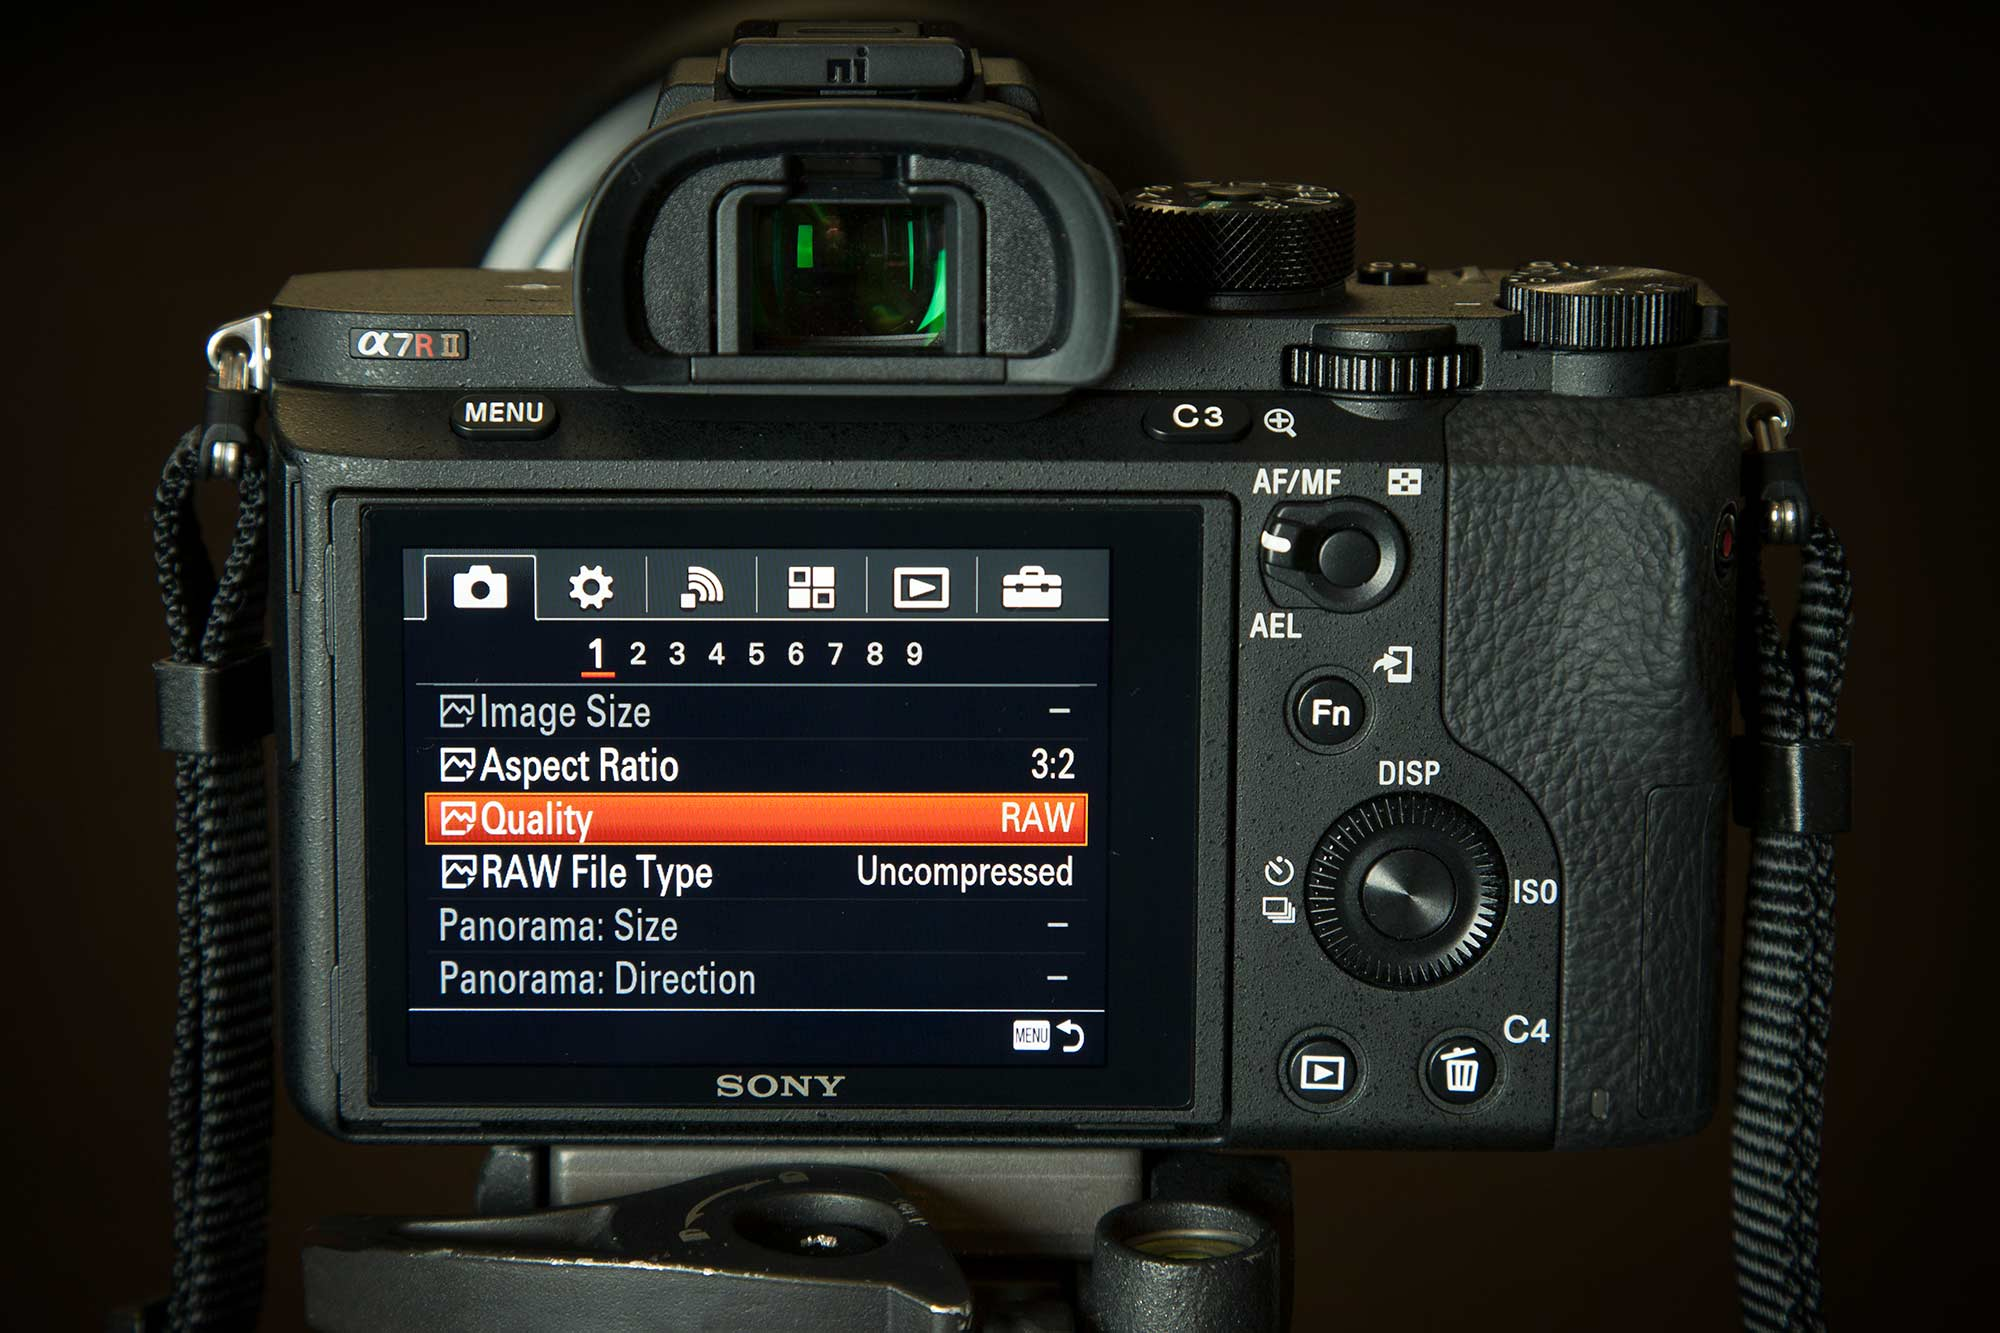 Presetpro | How To Customize Your Sony A7R II Camera